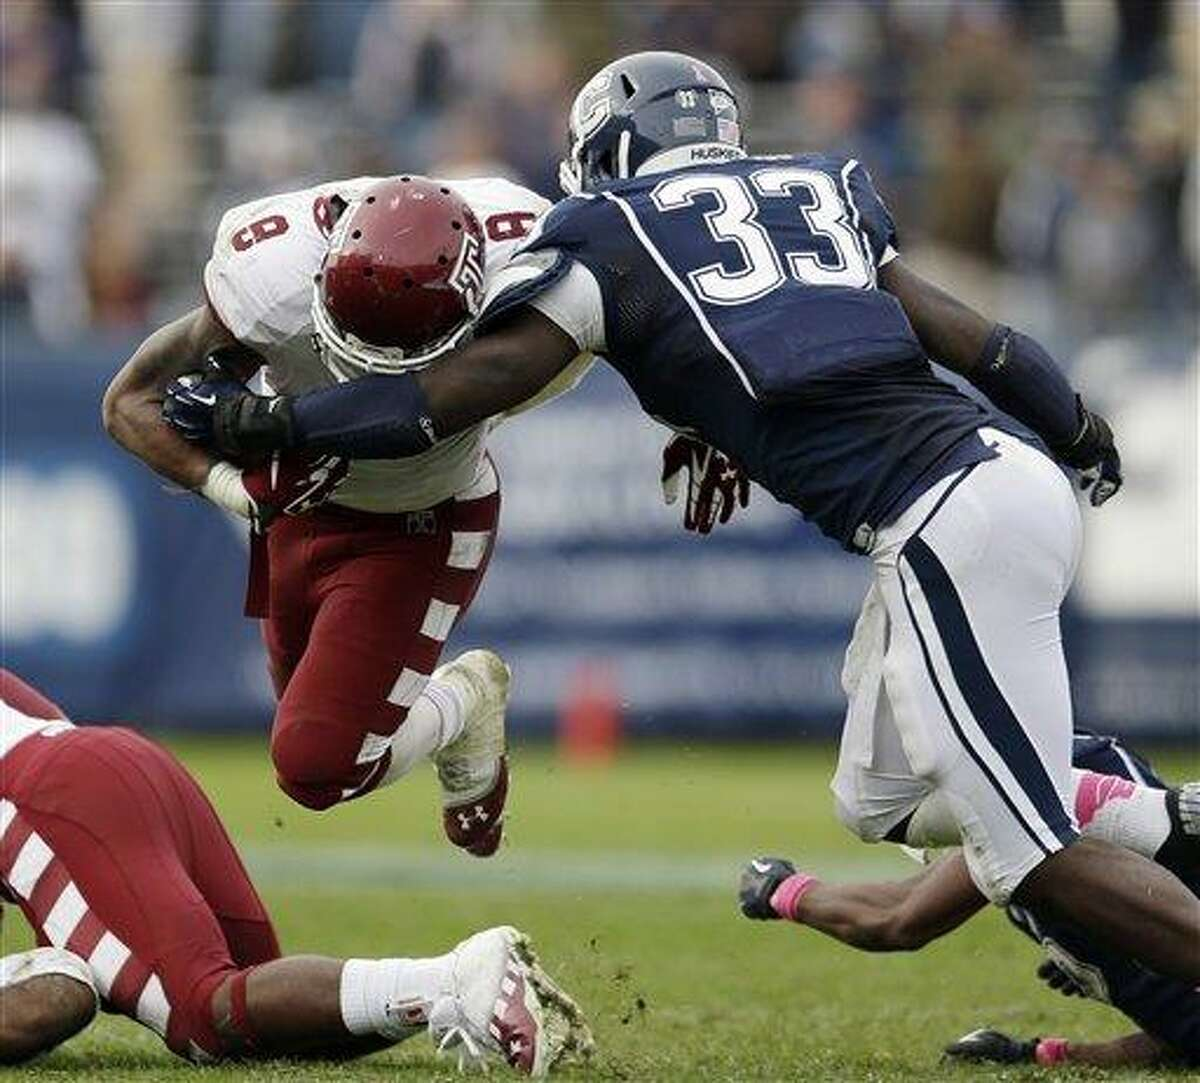 Connecticut linebacker Yawin Smallwood (33) tackles Temple running back Montel Harris (8) in overtime during an NCAA college football game in East Hartford, Conn., Saturday, Oct. 13, 2012. Temple won 17-14. (AP Photo/Michael Dwyer)